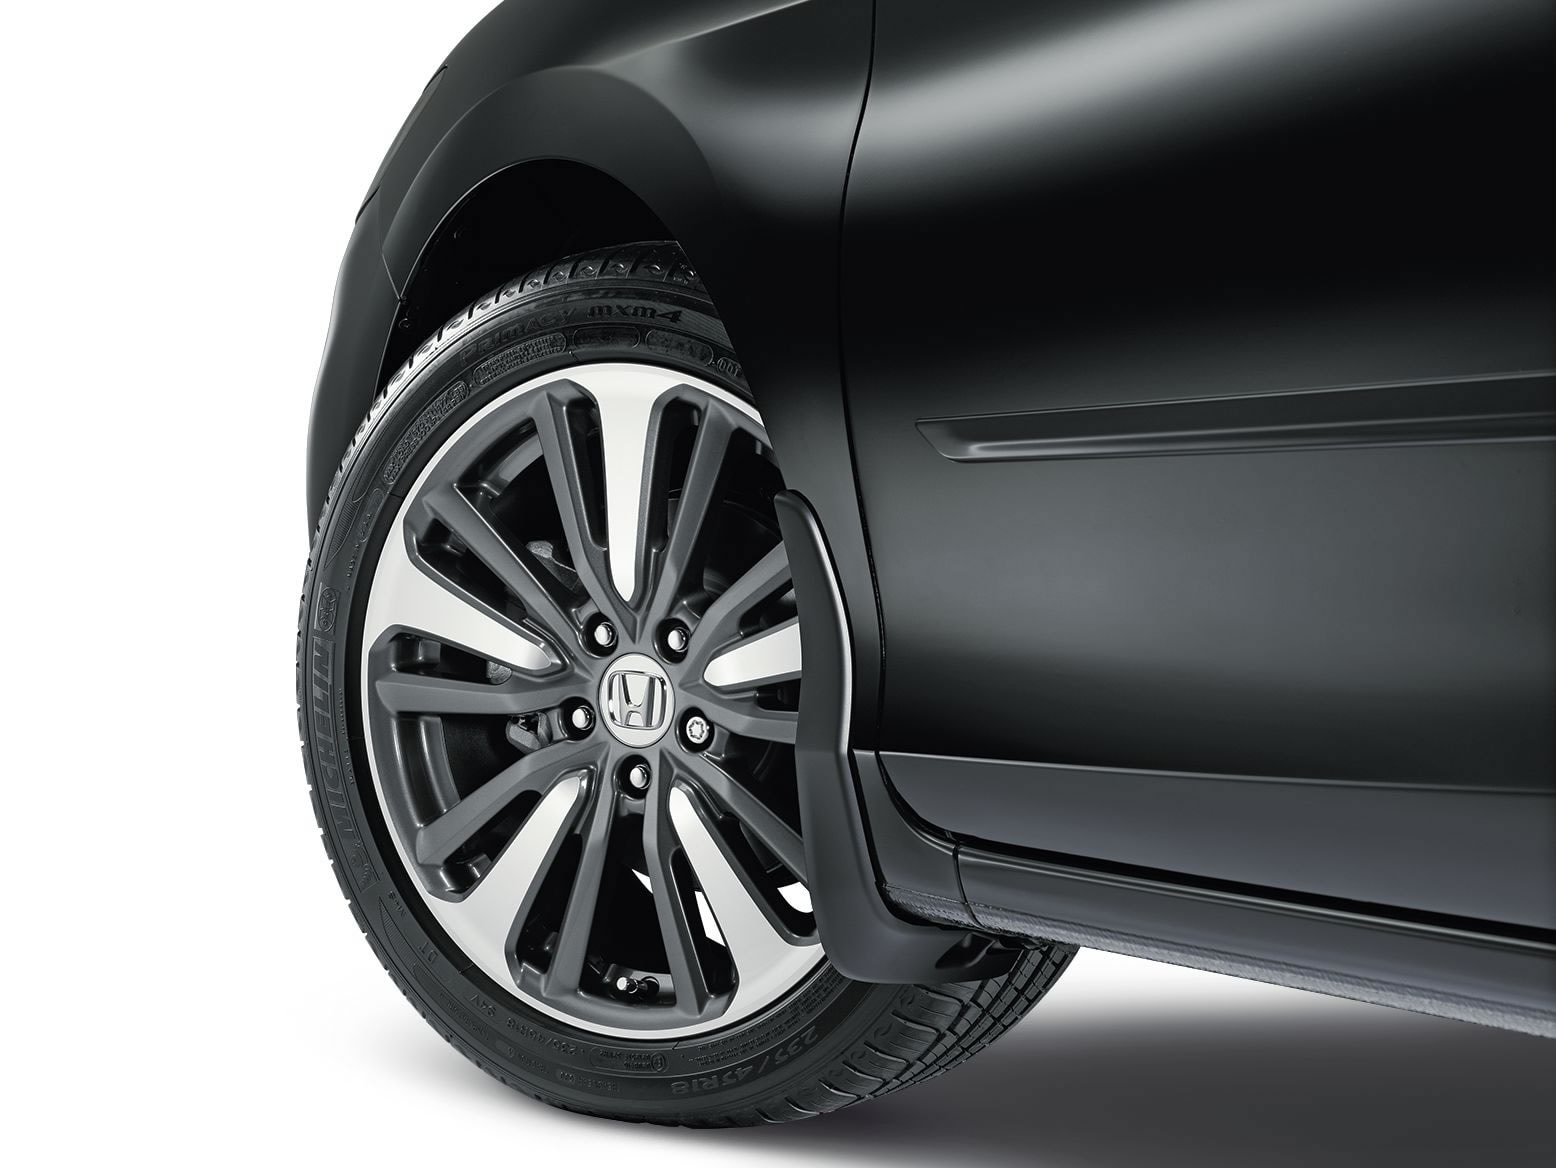 18-INCH DIAMOND CUT ALLOY WHEEL (part number:)